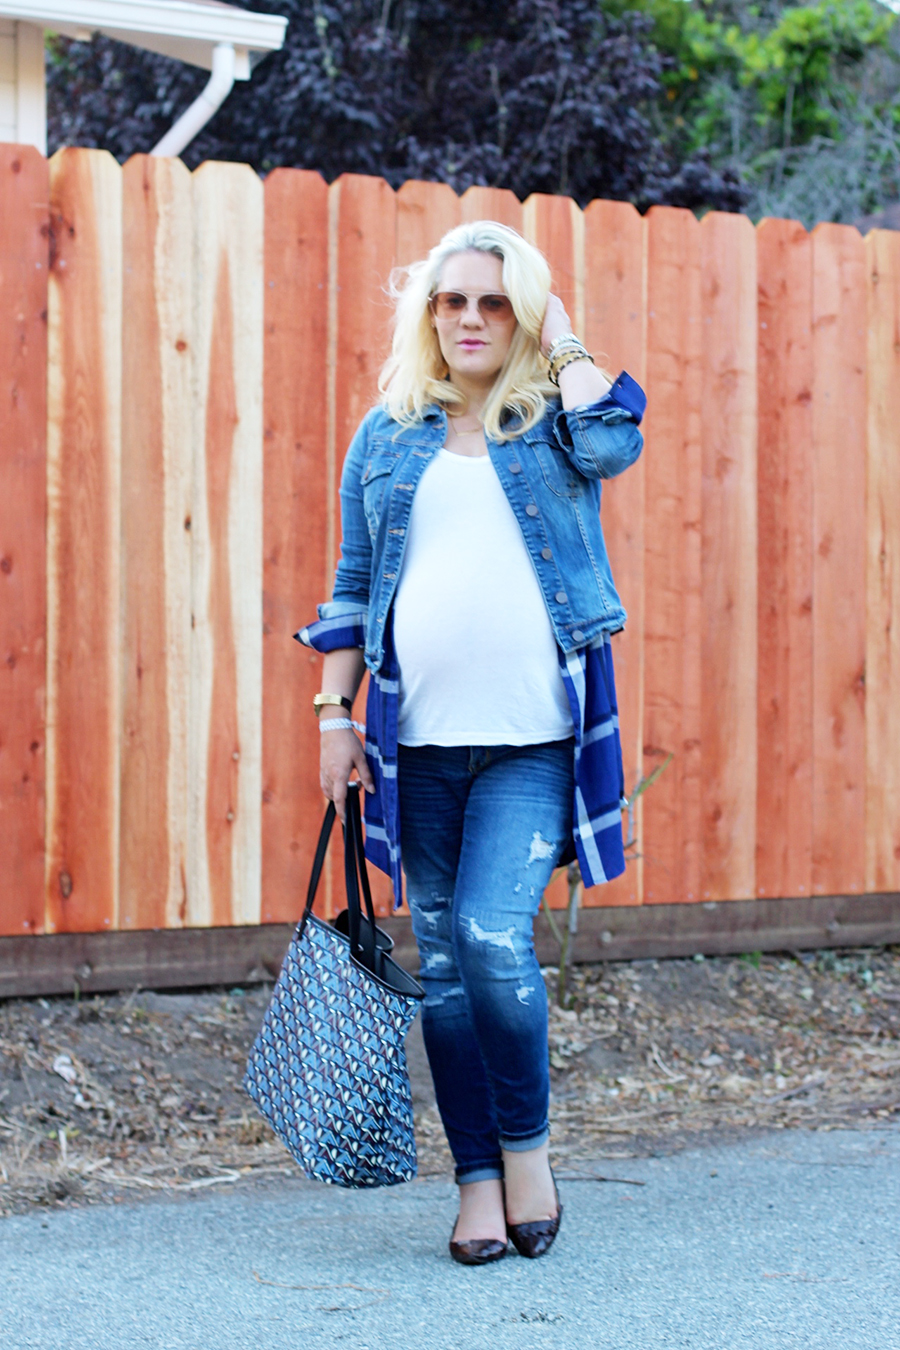 Plaid Shirtdress-Maternity Style-Styling Your Baby Bump-Styling Tips-Pregnancy Style-Have Need Want 10